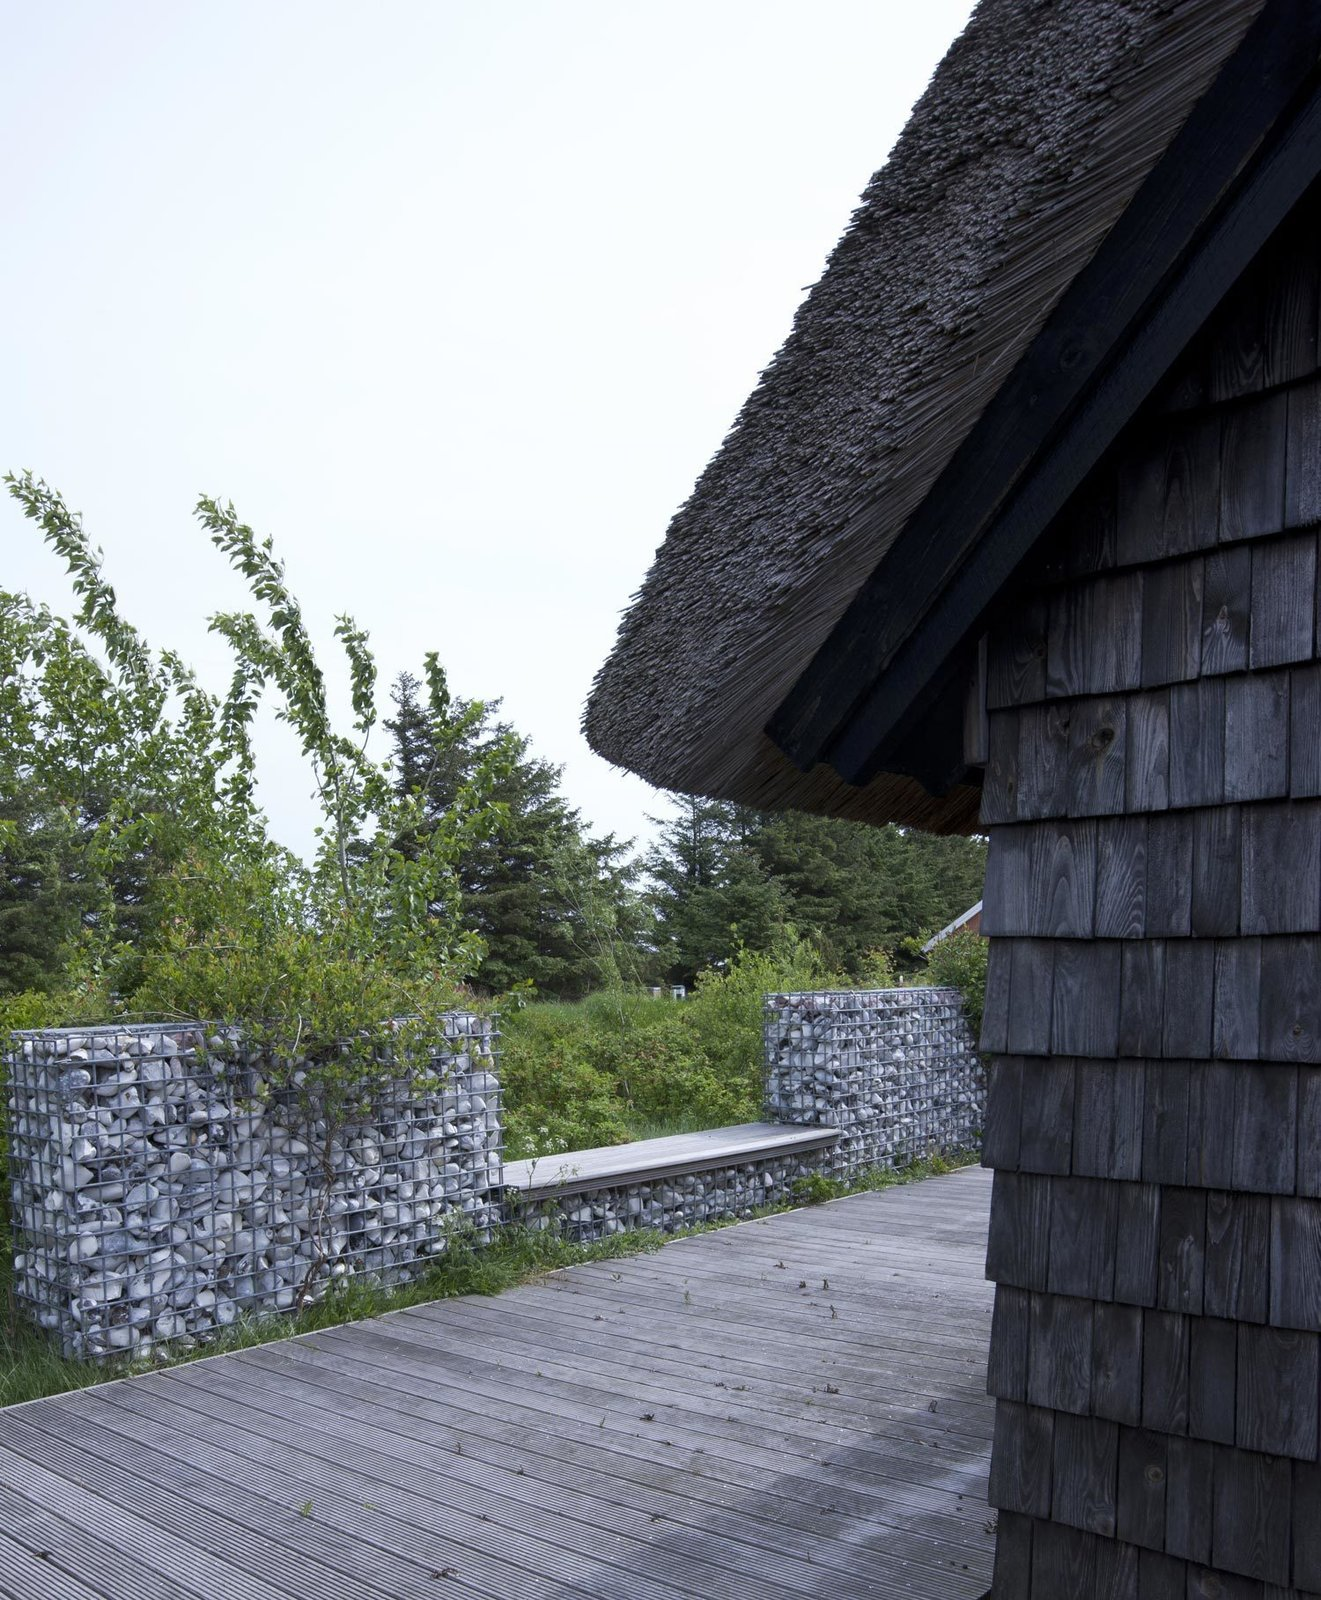 """A modern stone fence made of galvanized steel mesh filled with stones surrounds the house. """"We got the stones from the local stonecutter—they use the stones washed up on the beach, not the stones from the fields,"""" Lassen explains."""